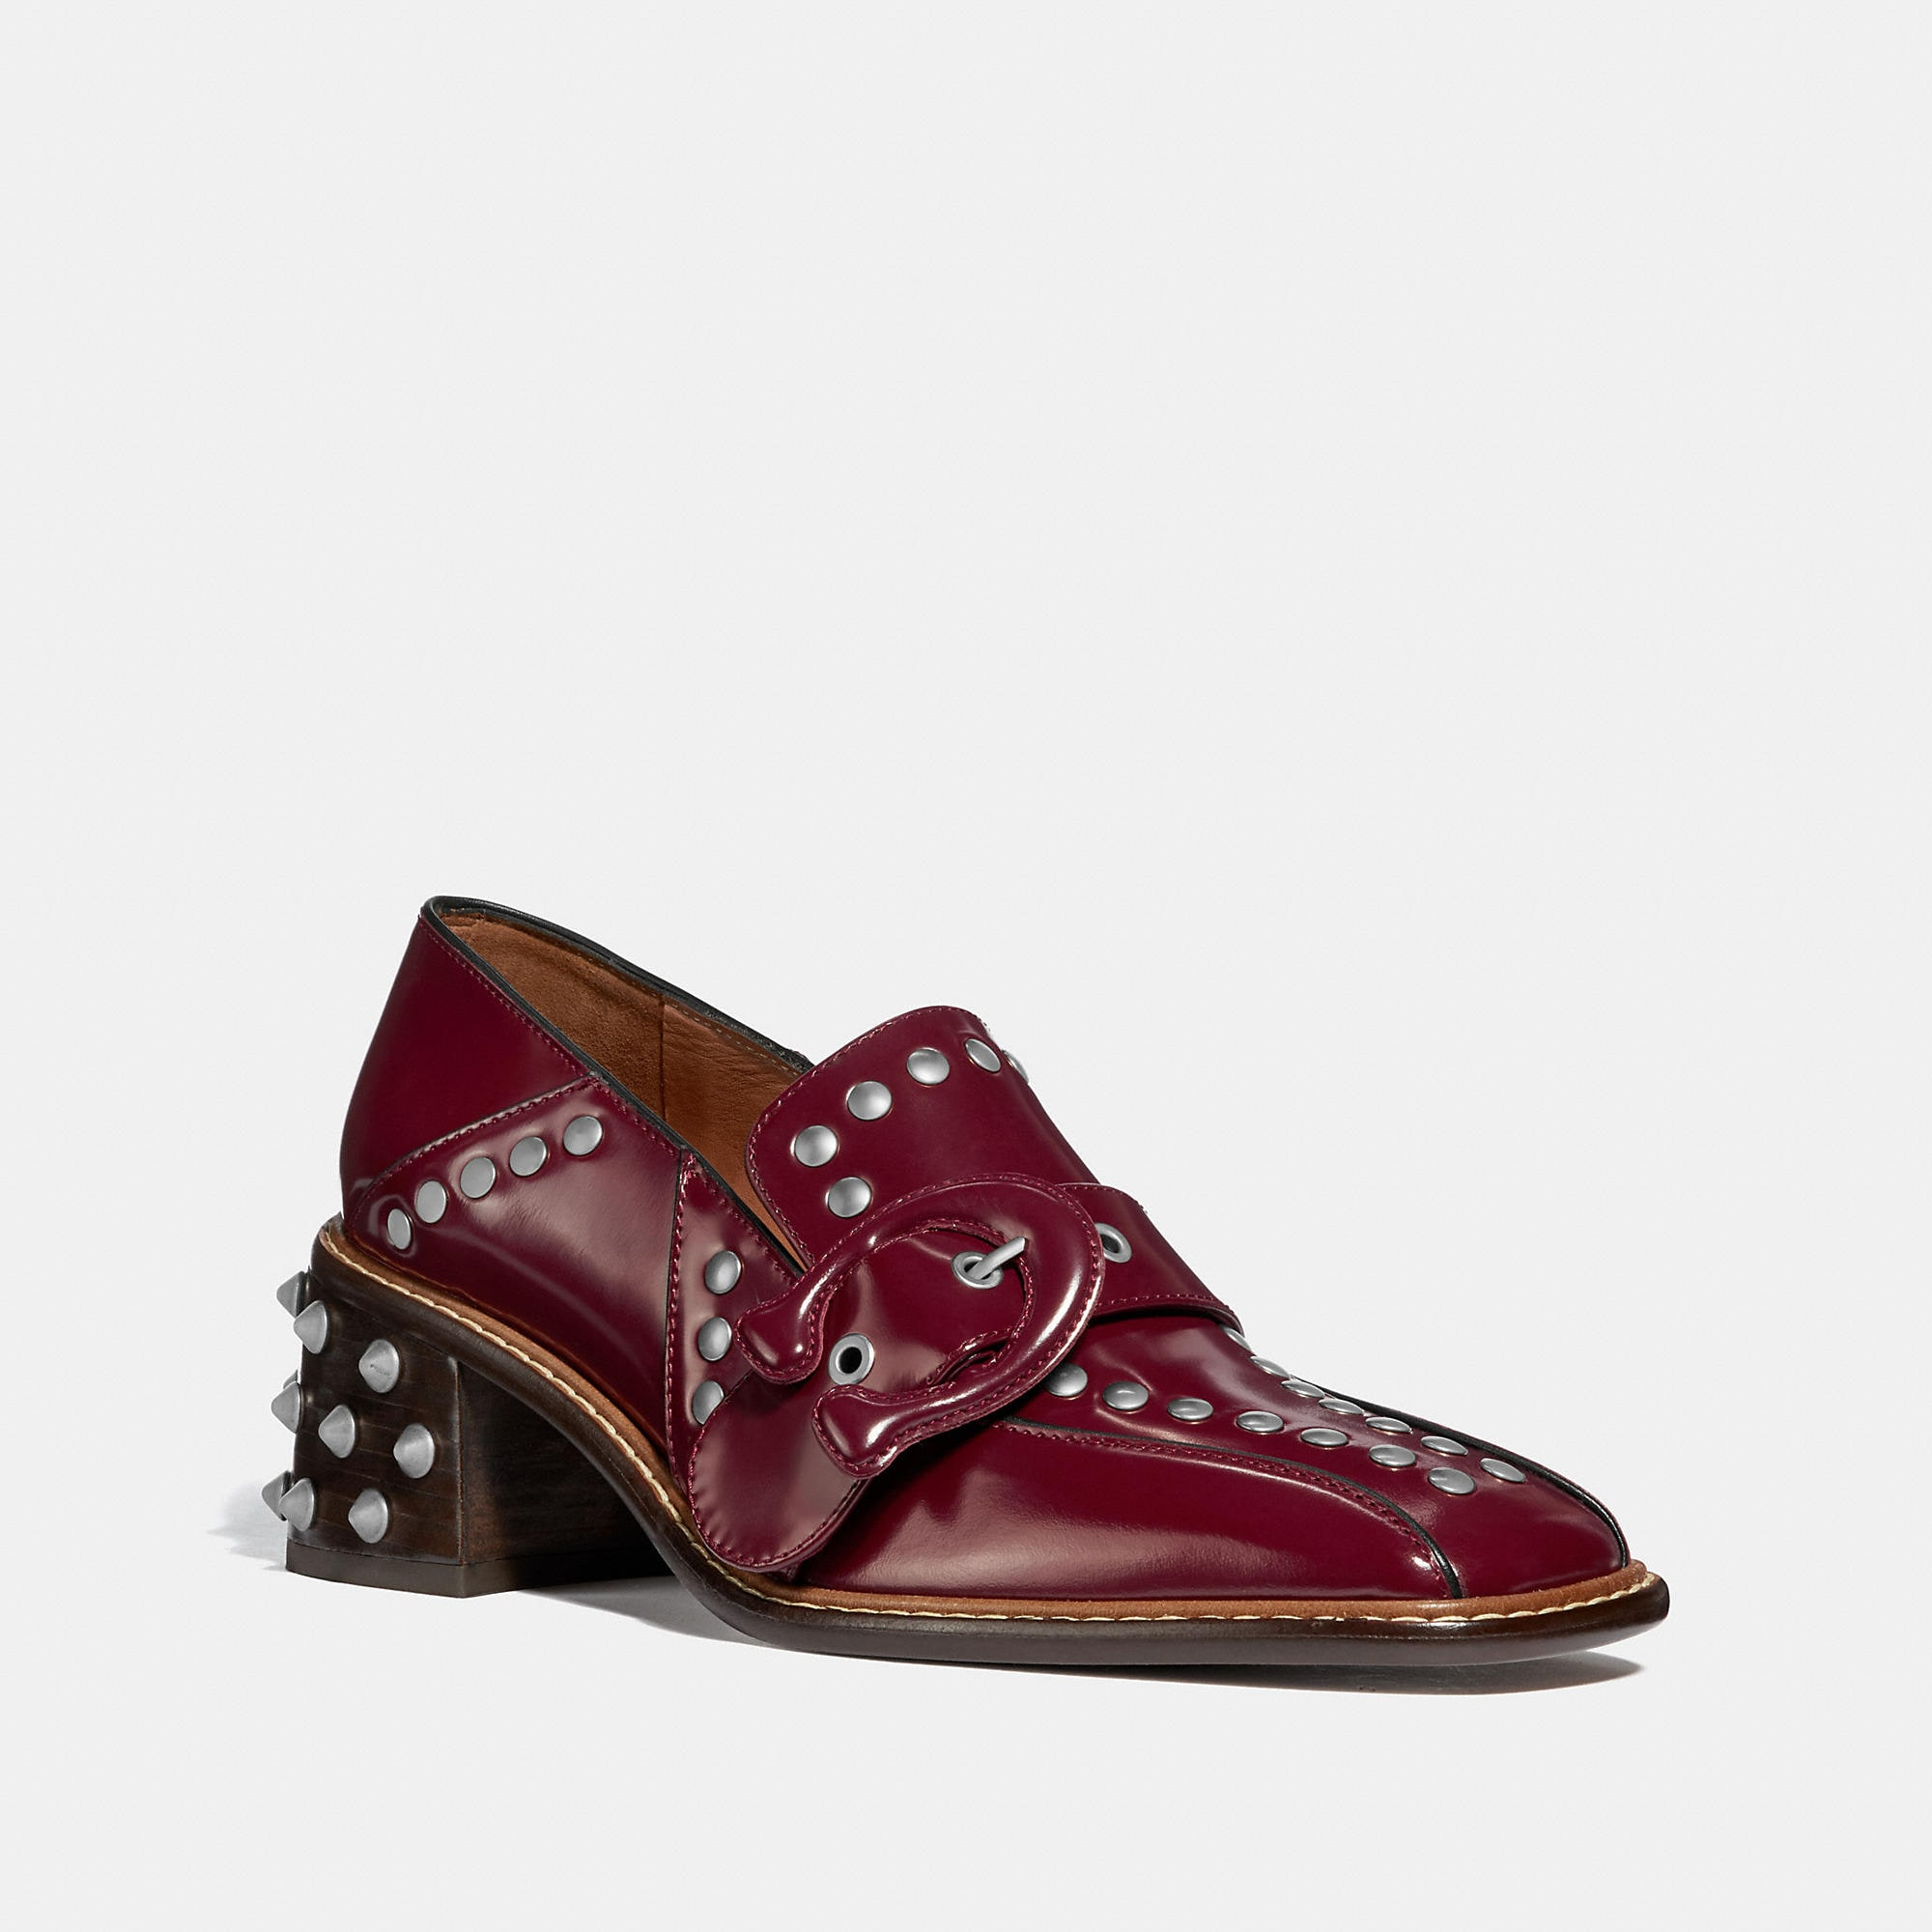 Coach Signature Buckle Loafer